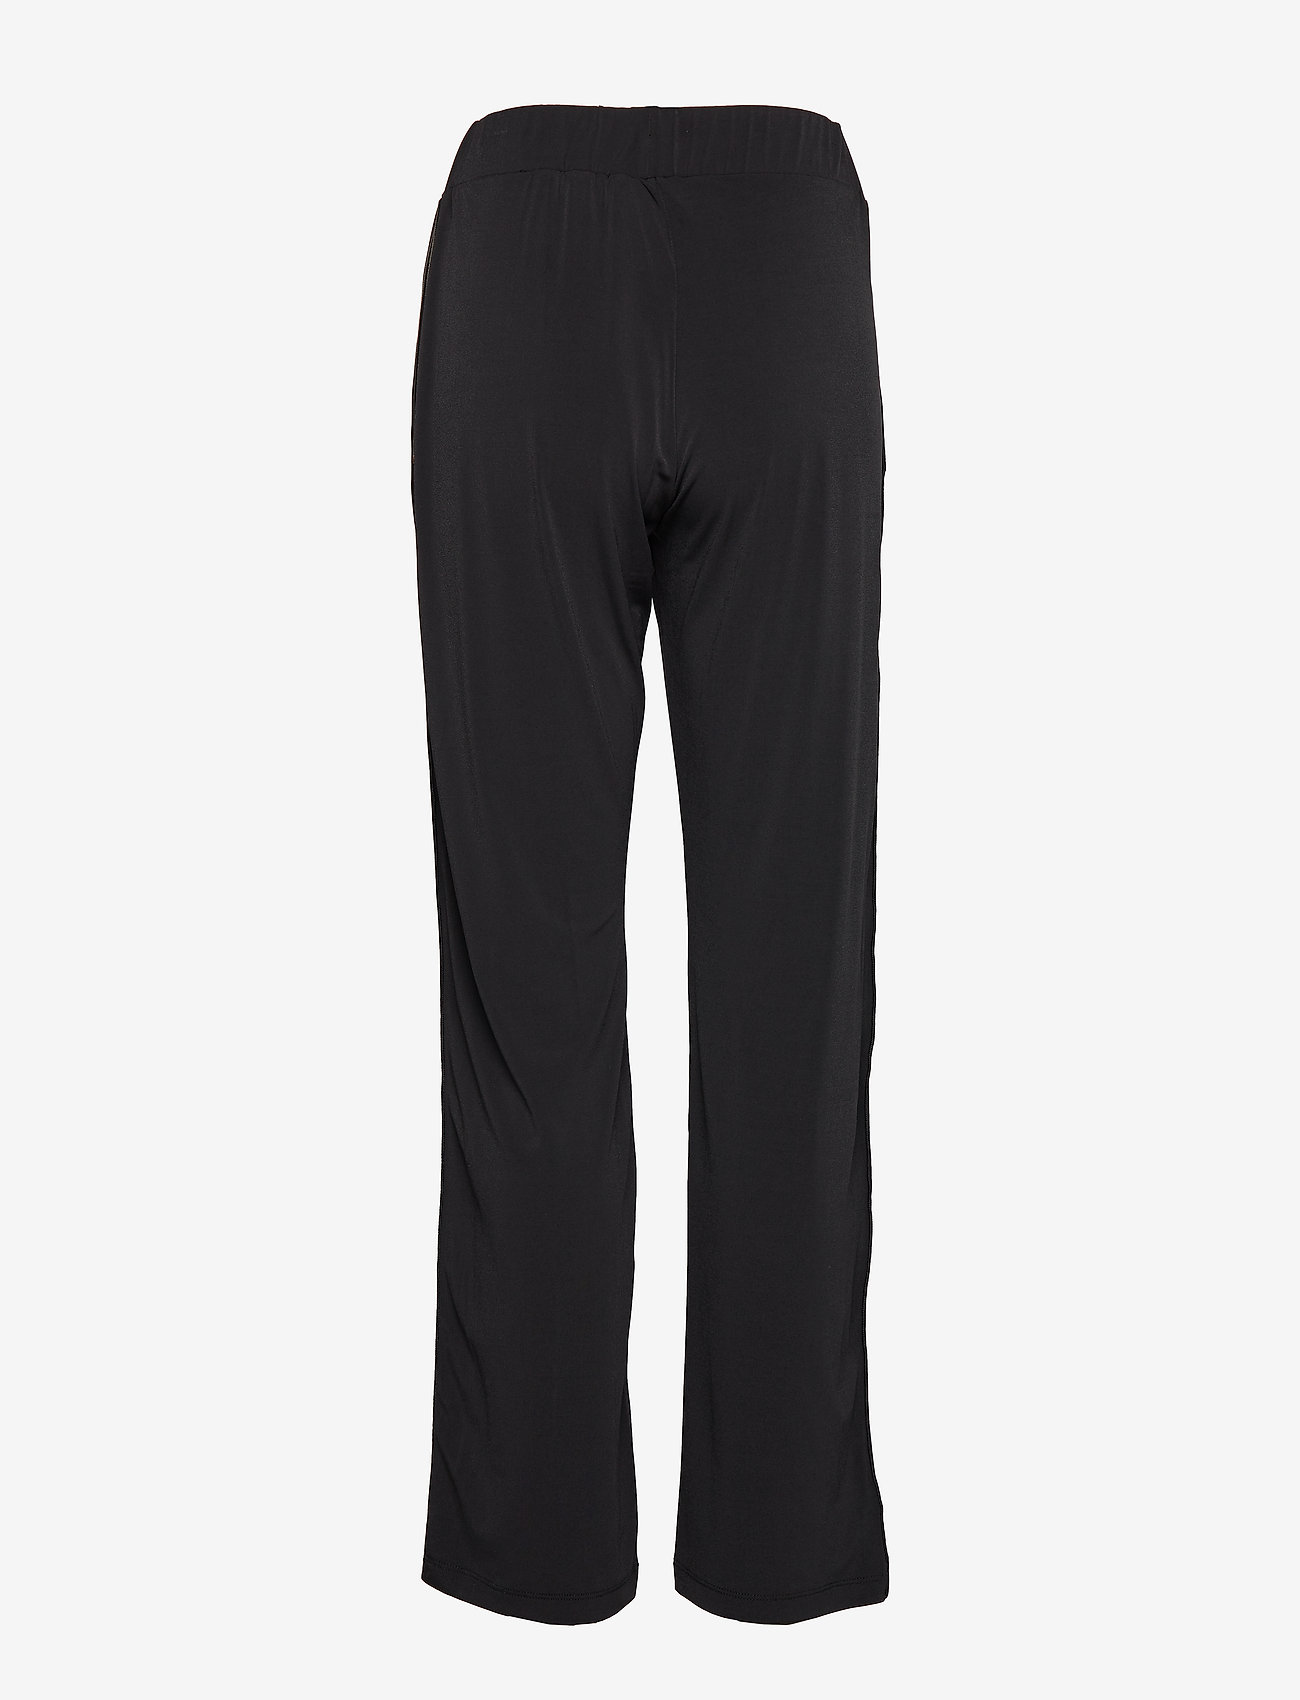 Cream Omina Pants - Byxor Pitch Black